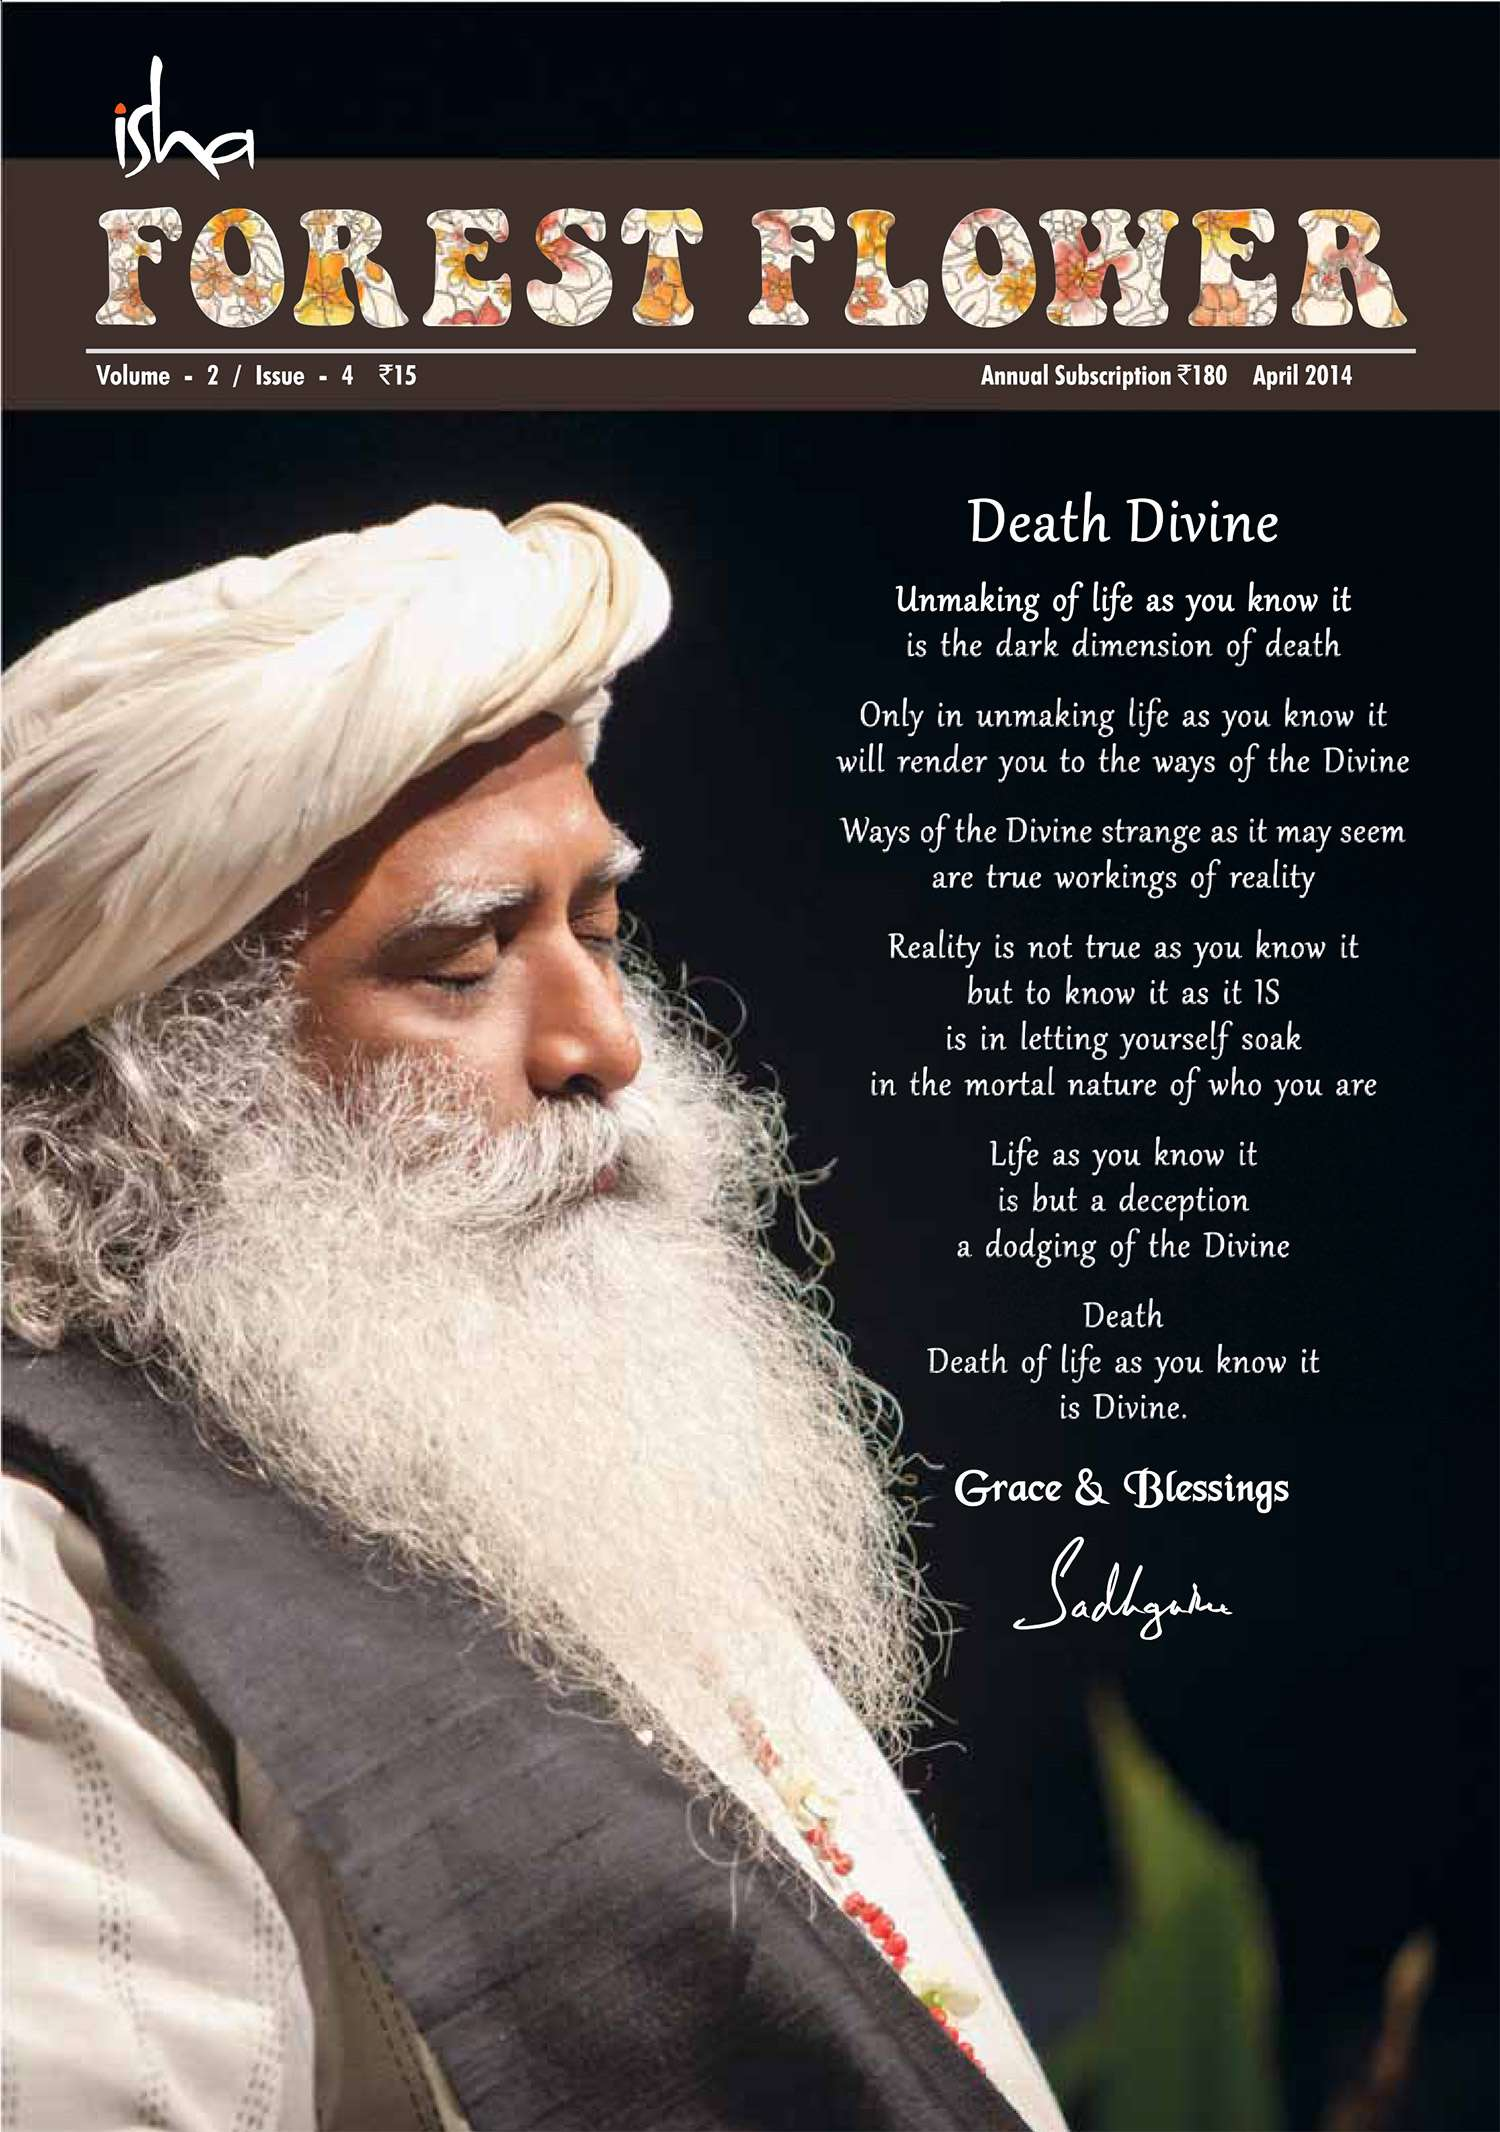 Forest Flower April 2014 - Cover Image